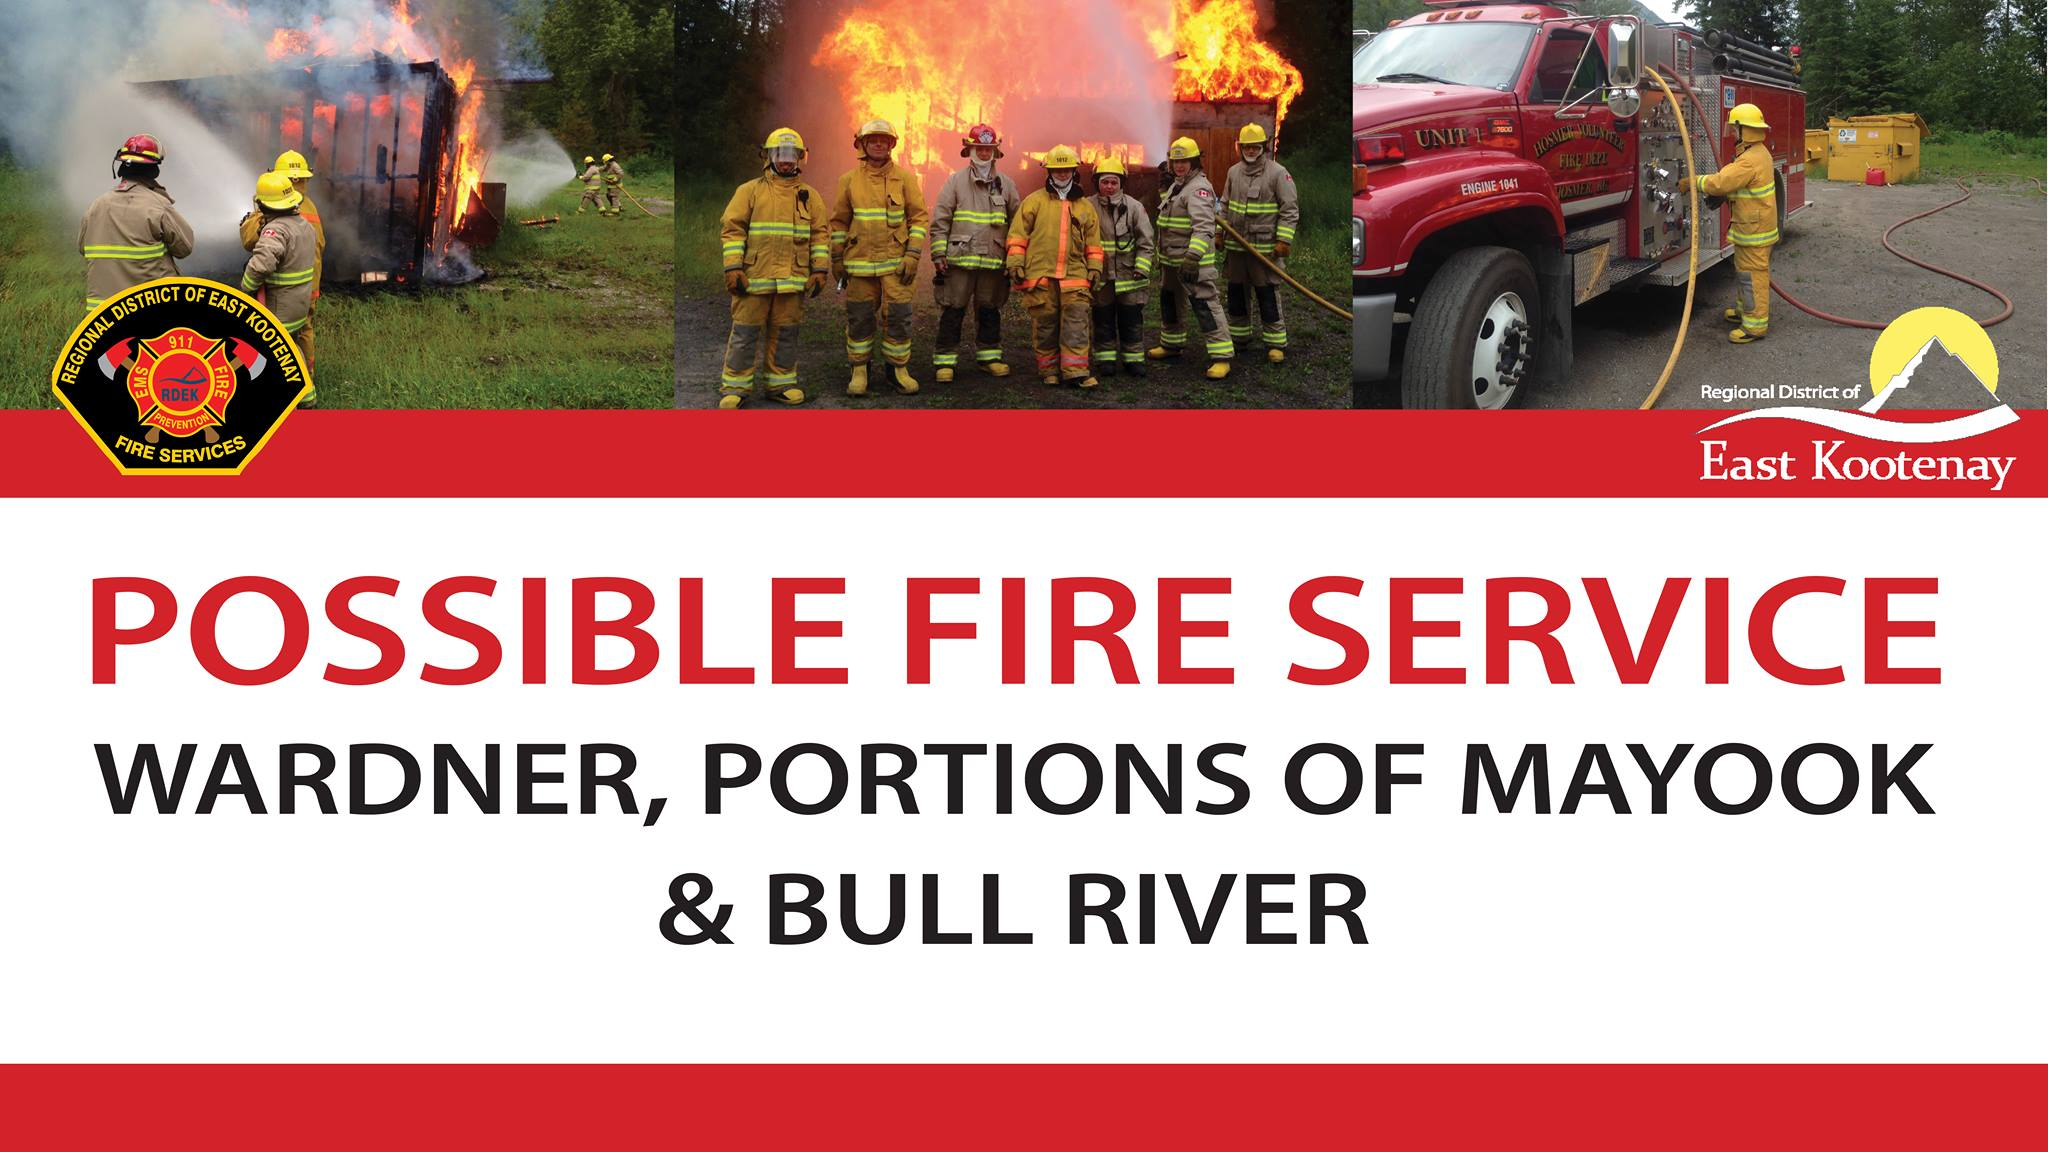 Public meeting in Wadner to discuss fire service expansion